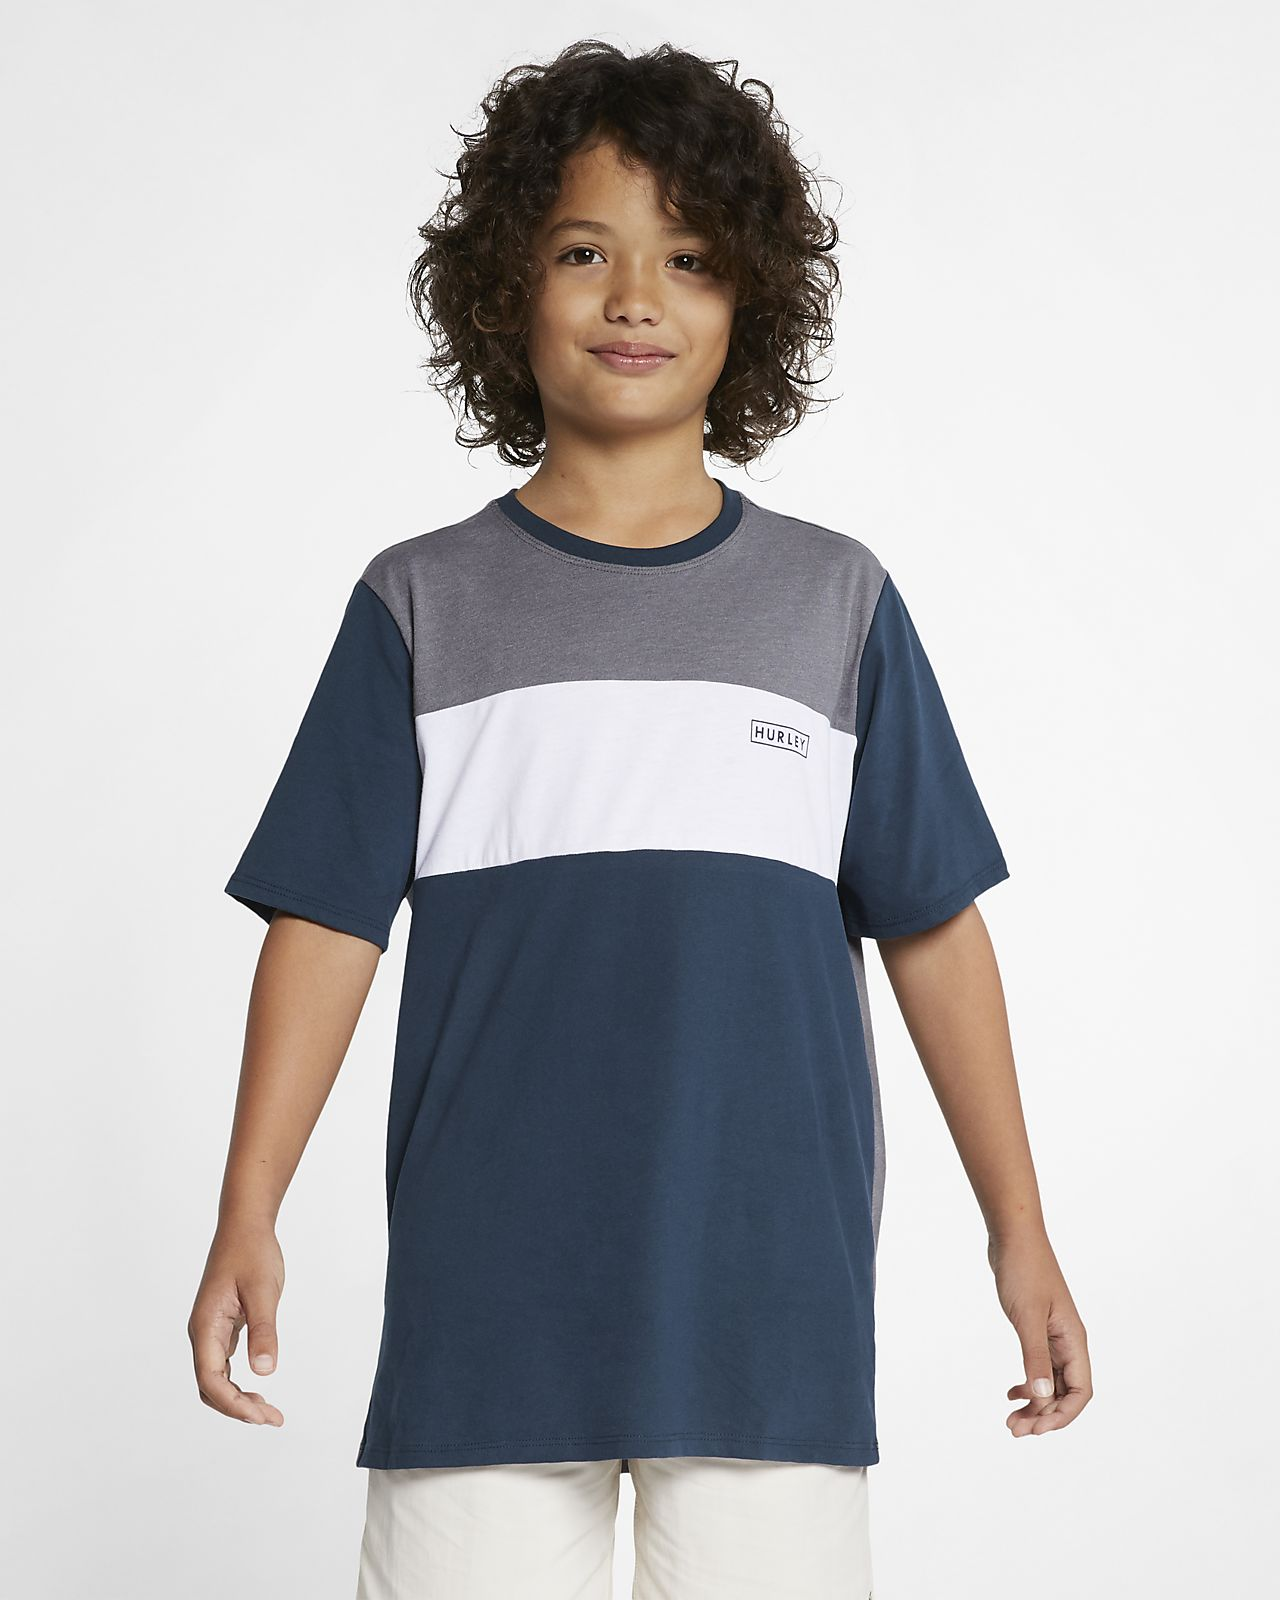 Hurley Dri-FIT Blocked Jungenoberteil